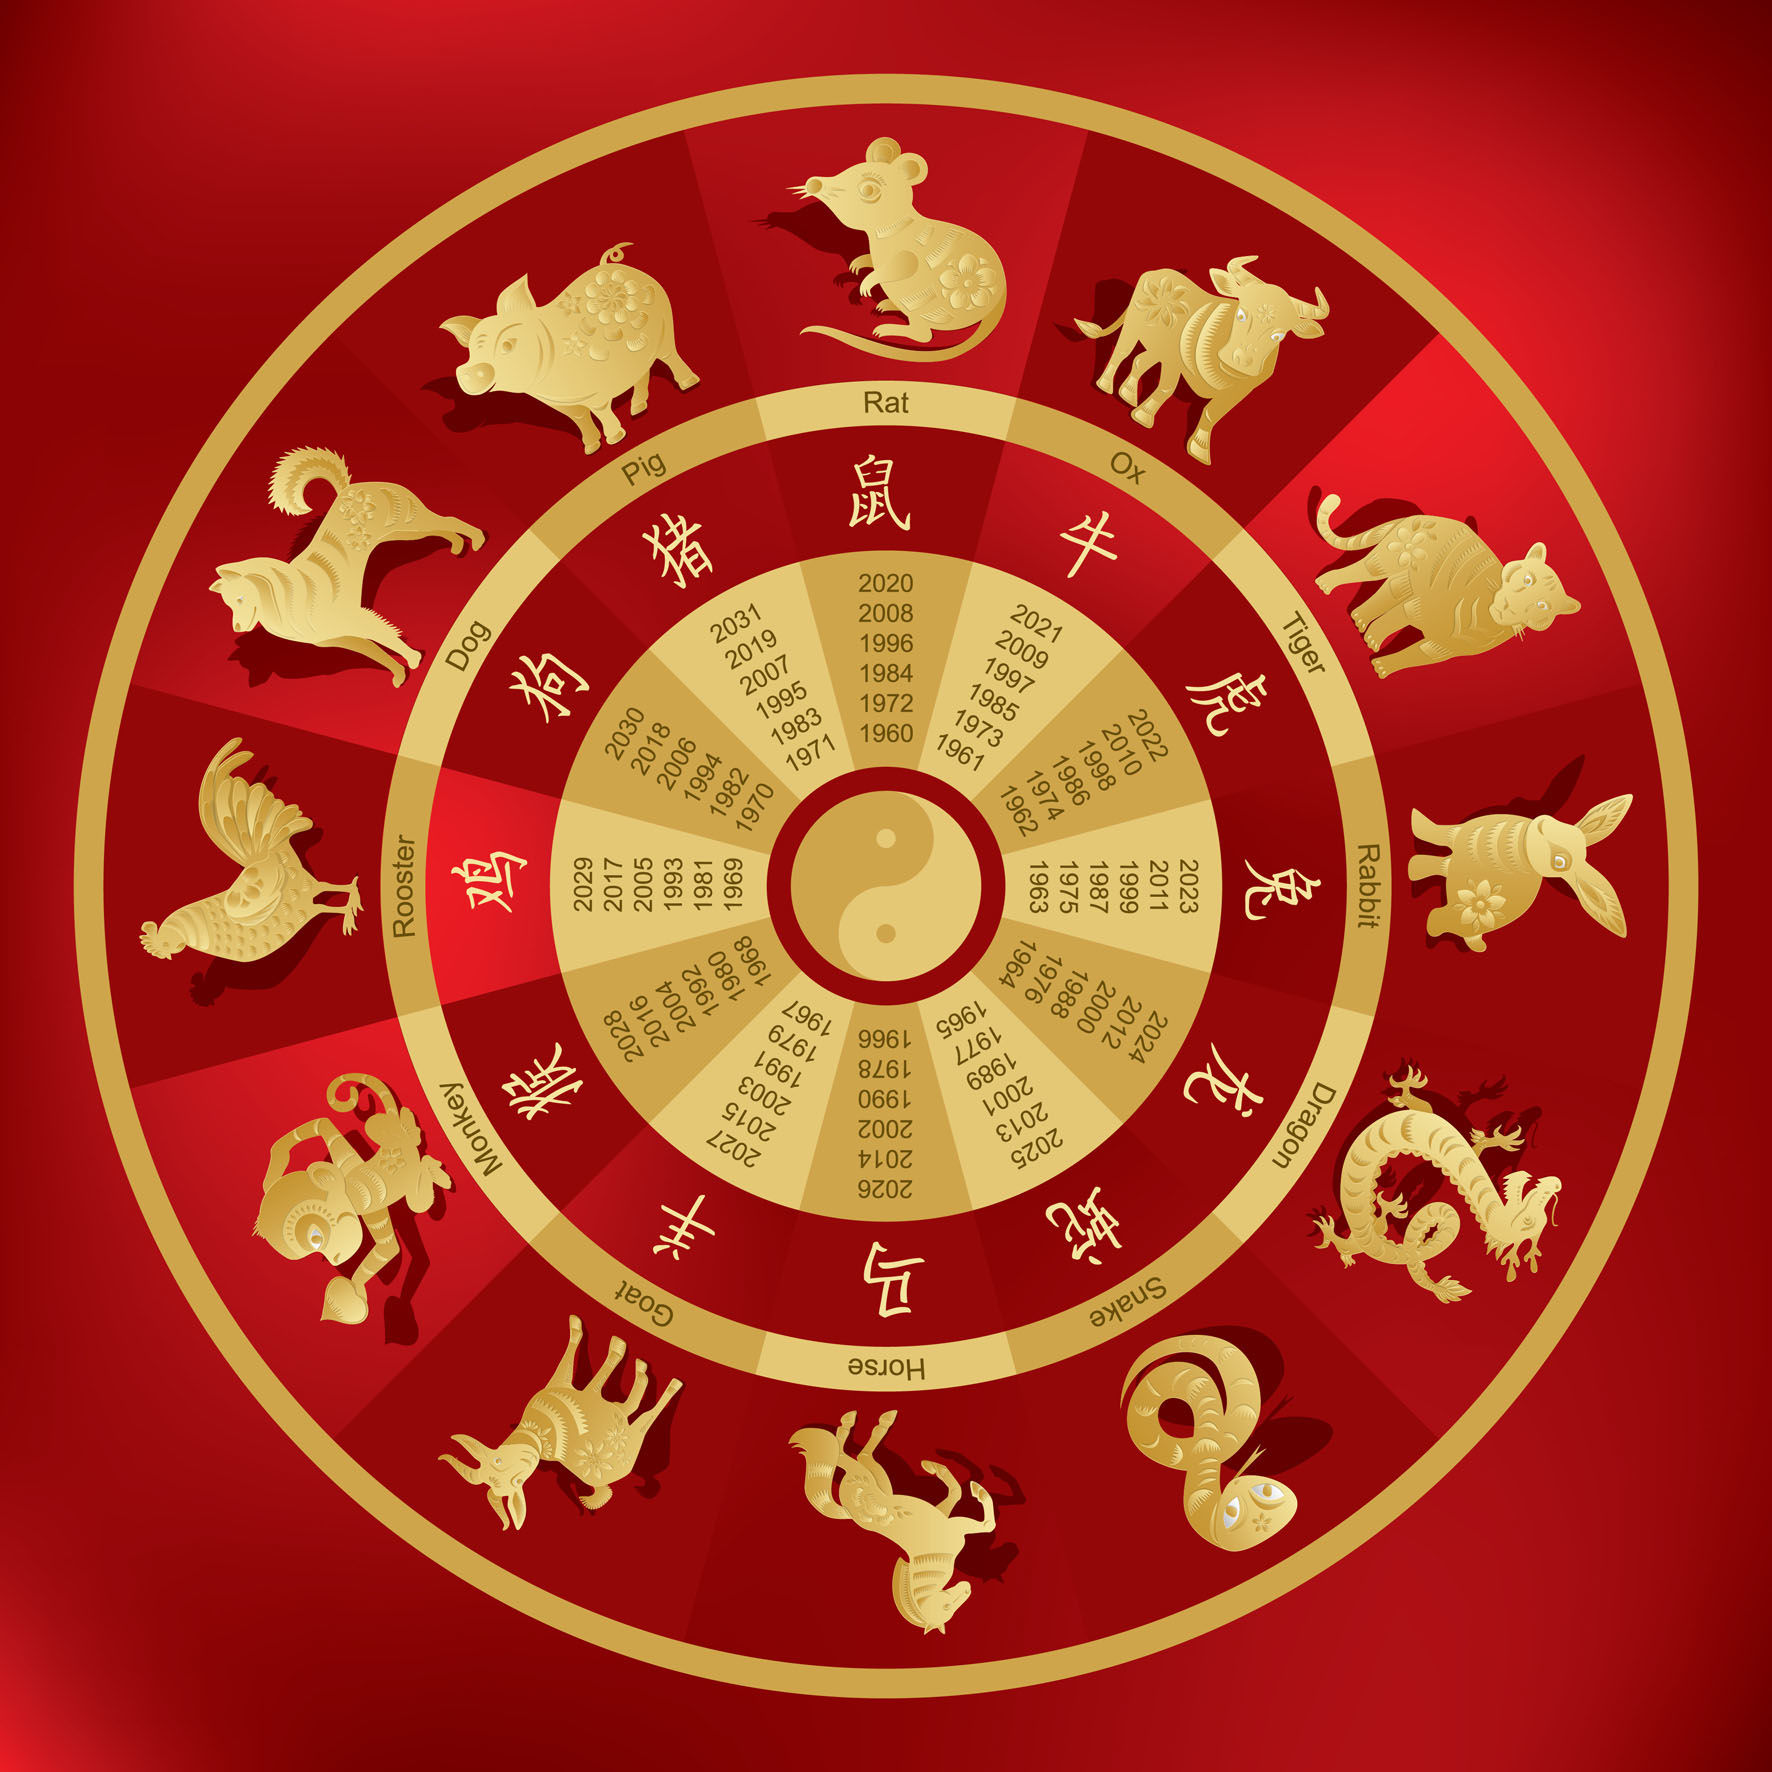 Chinese zodiac compatibility wheel